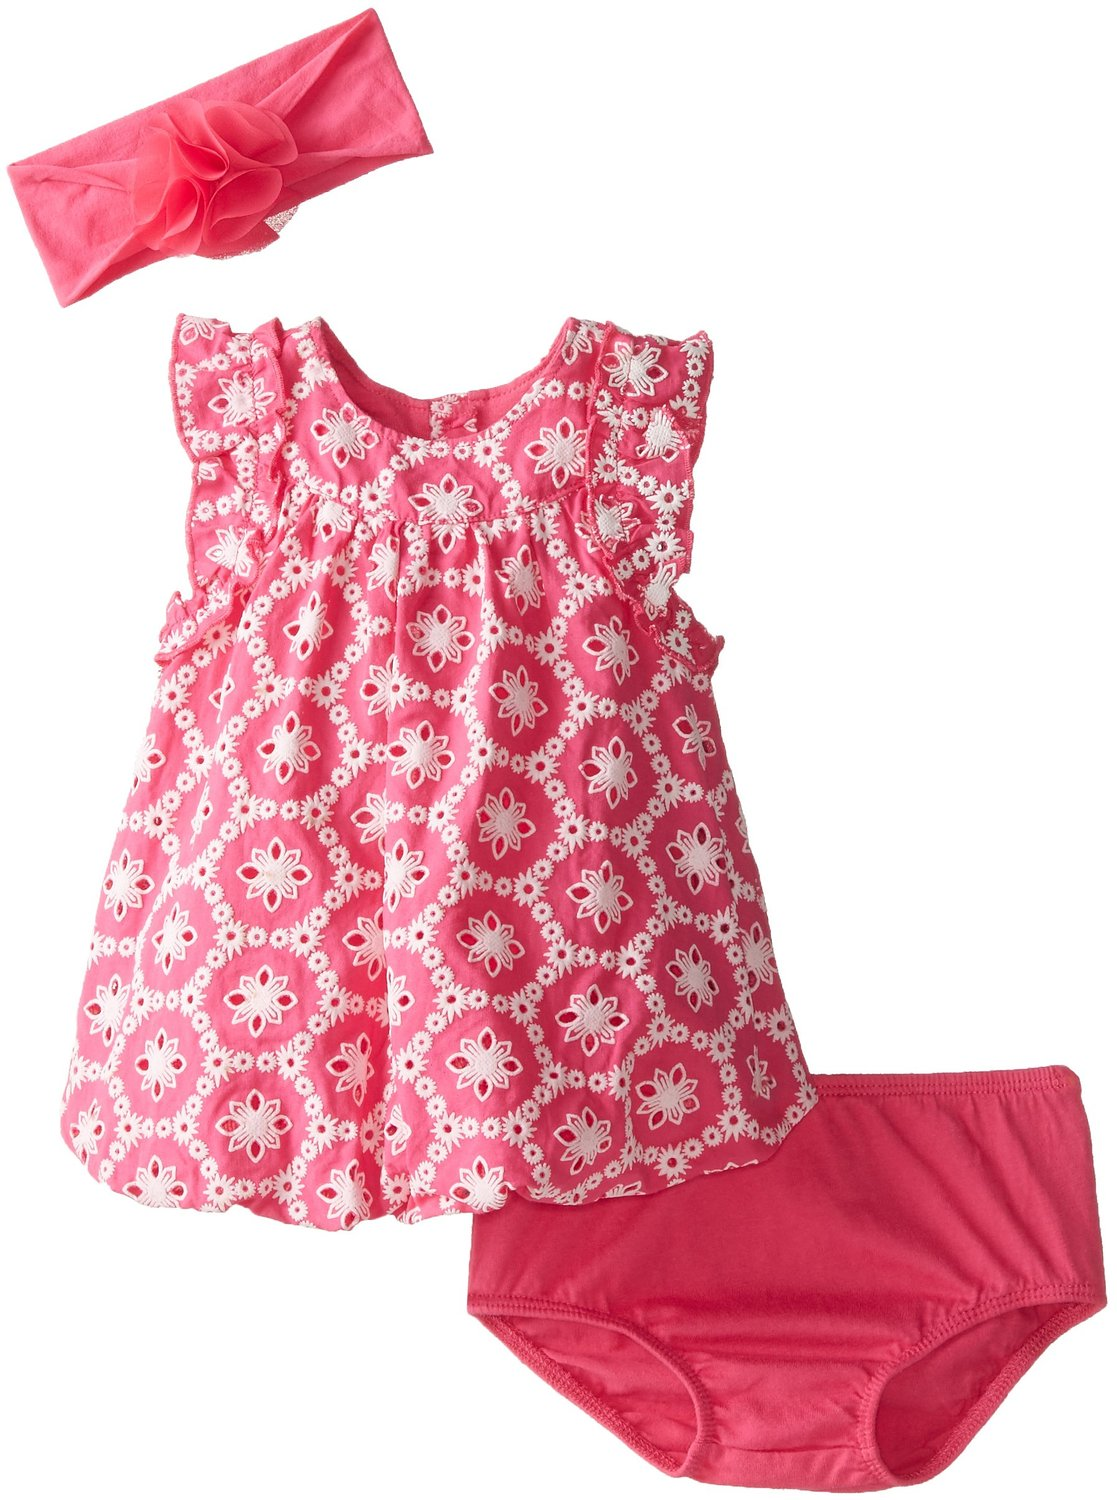 3bd477247 Fun Ways to Find Cheap Baby Clothes